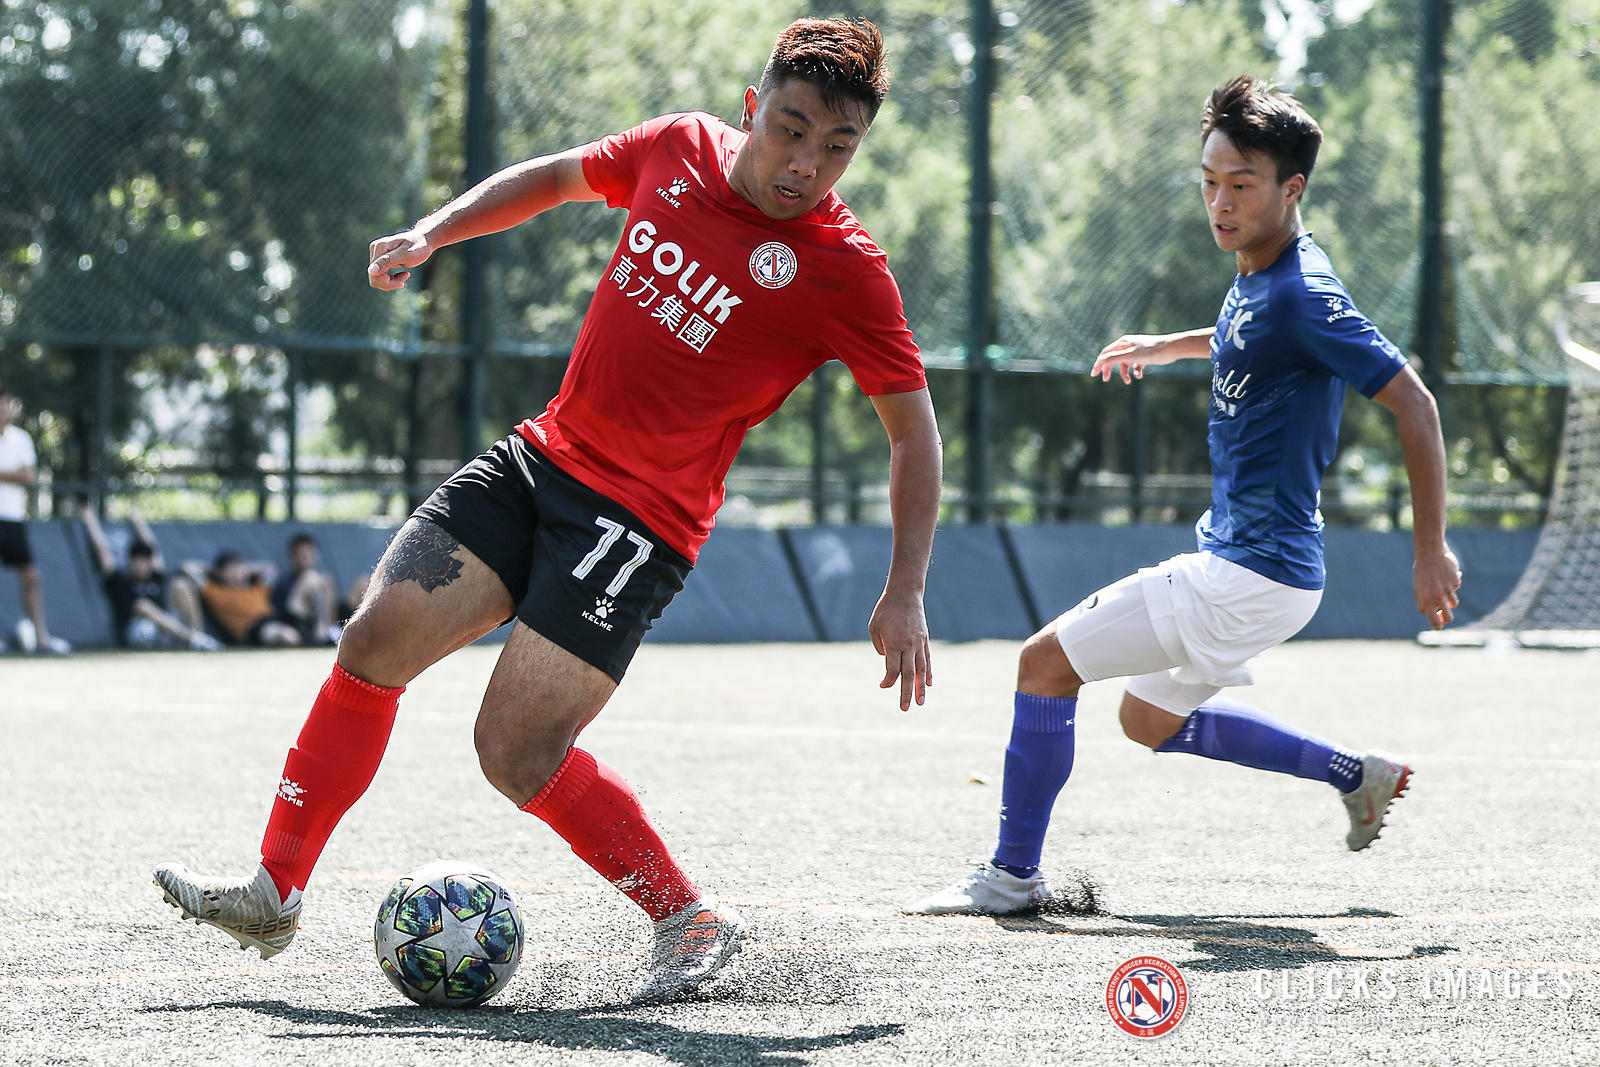 Hong Kong Football League 1st Division - ICANFIELD VS GOLIK NORTH DISTRICT on September 22, 2019. Photo by Ming So/Golik Nort...